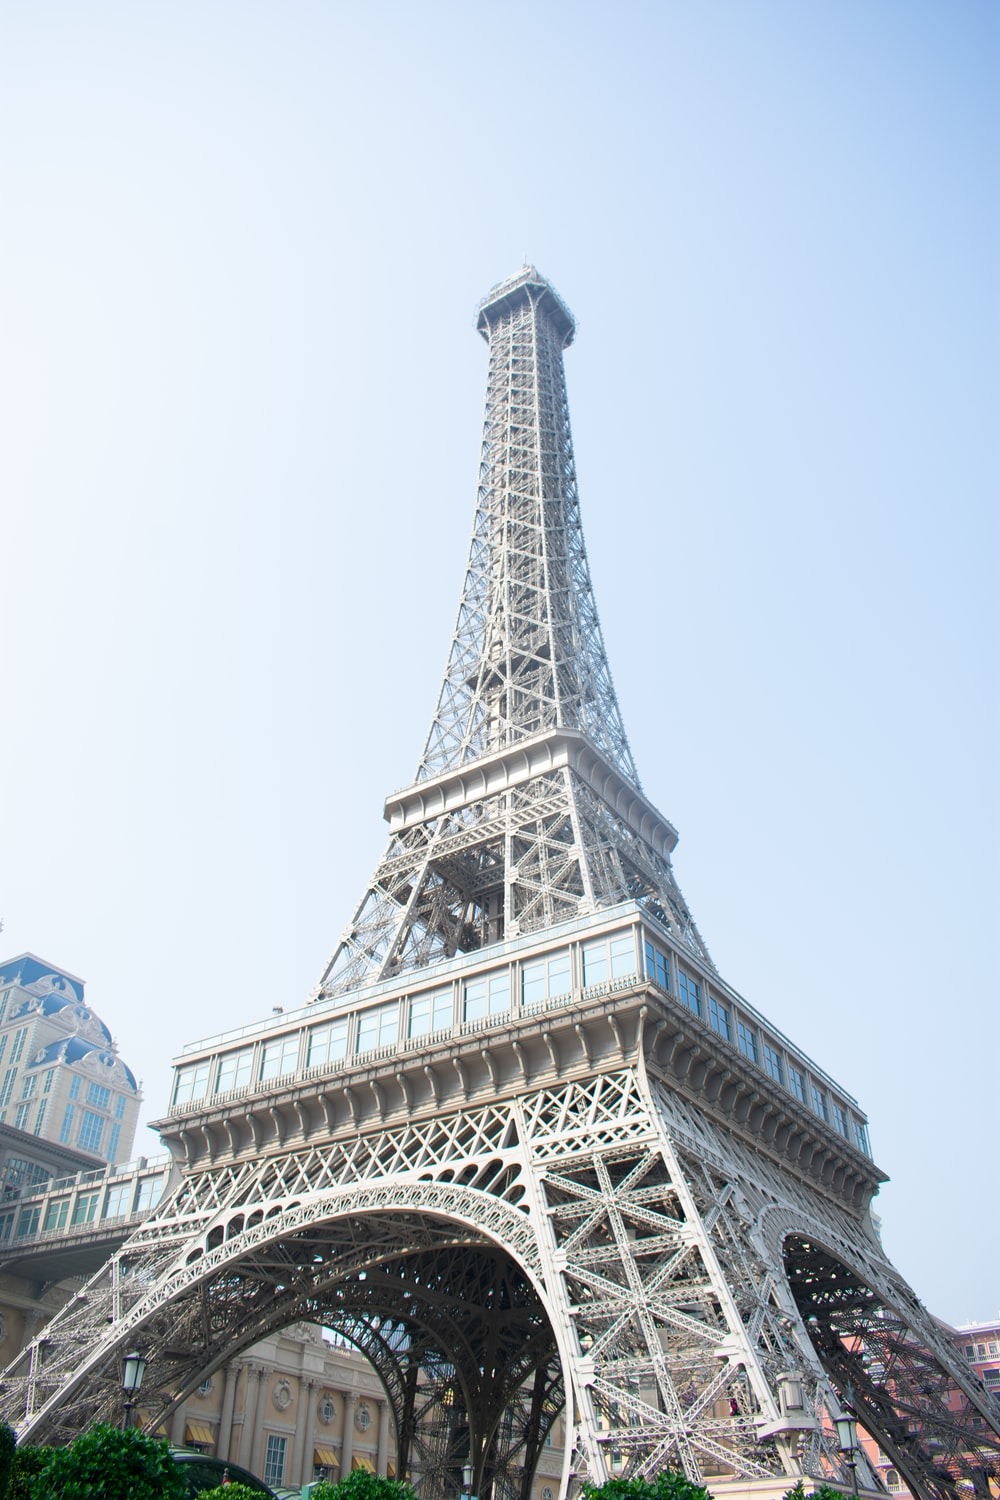 low-angle photography of Eiffel Tower in Paris France during daytime